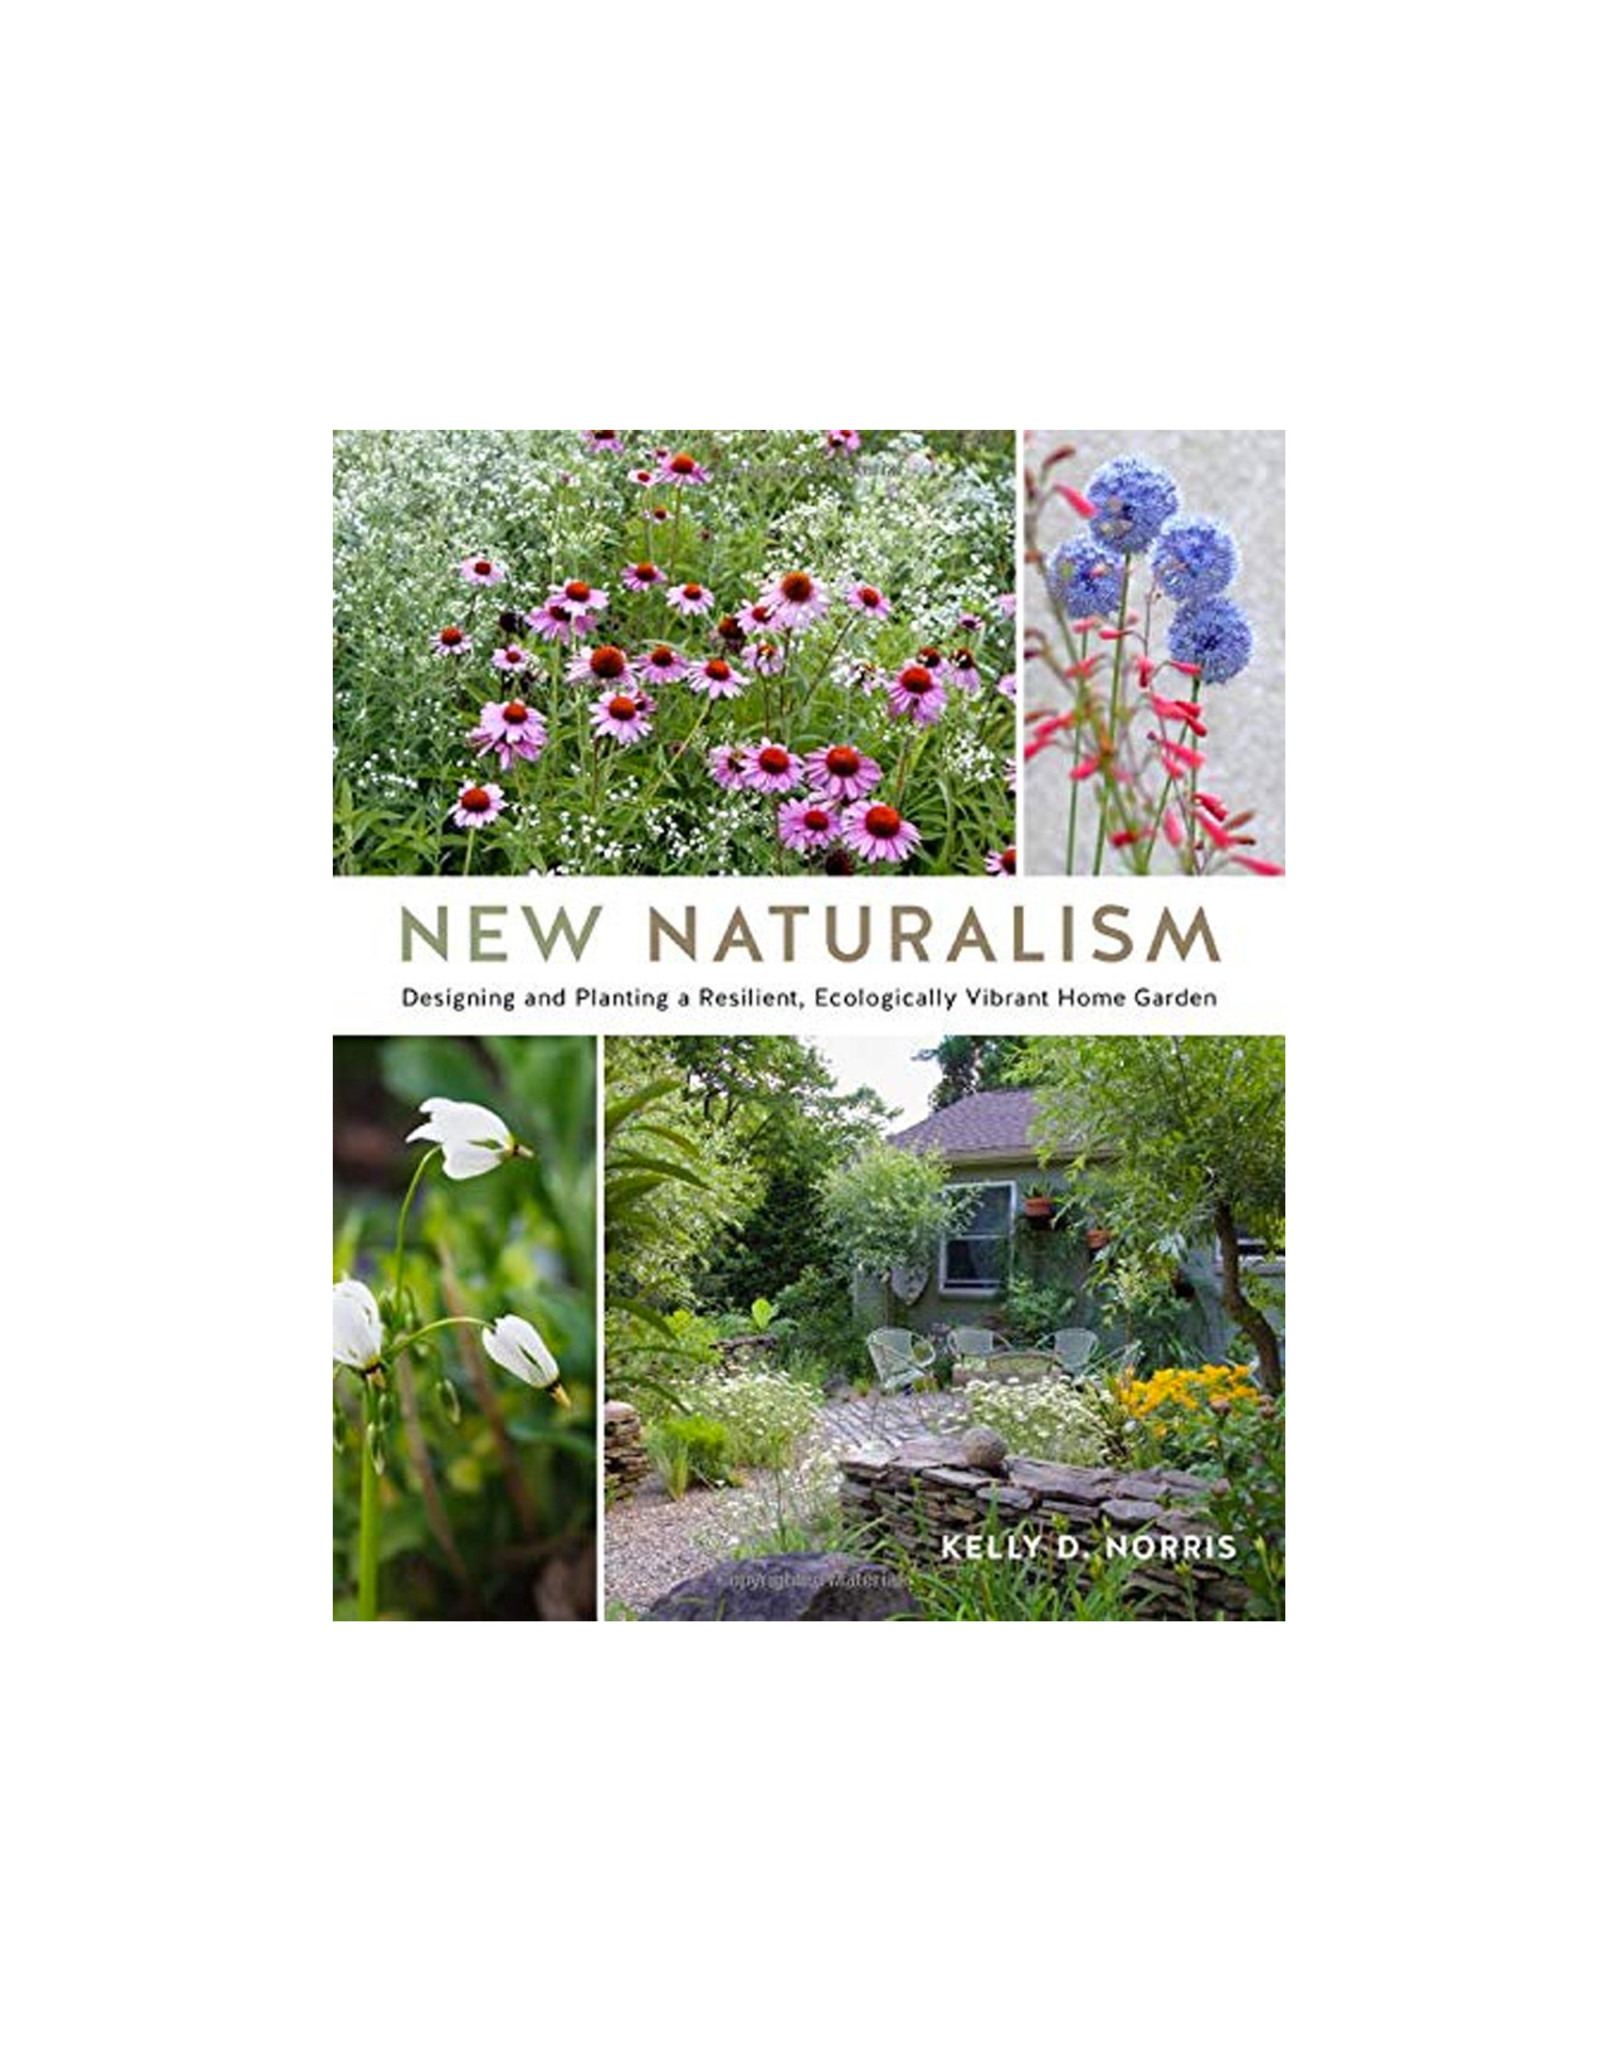 New Naturalism: Mastering the Art of Designing and Planting Resilient Home Gardens